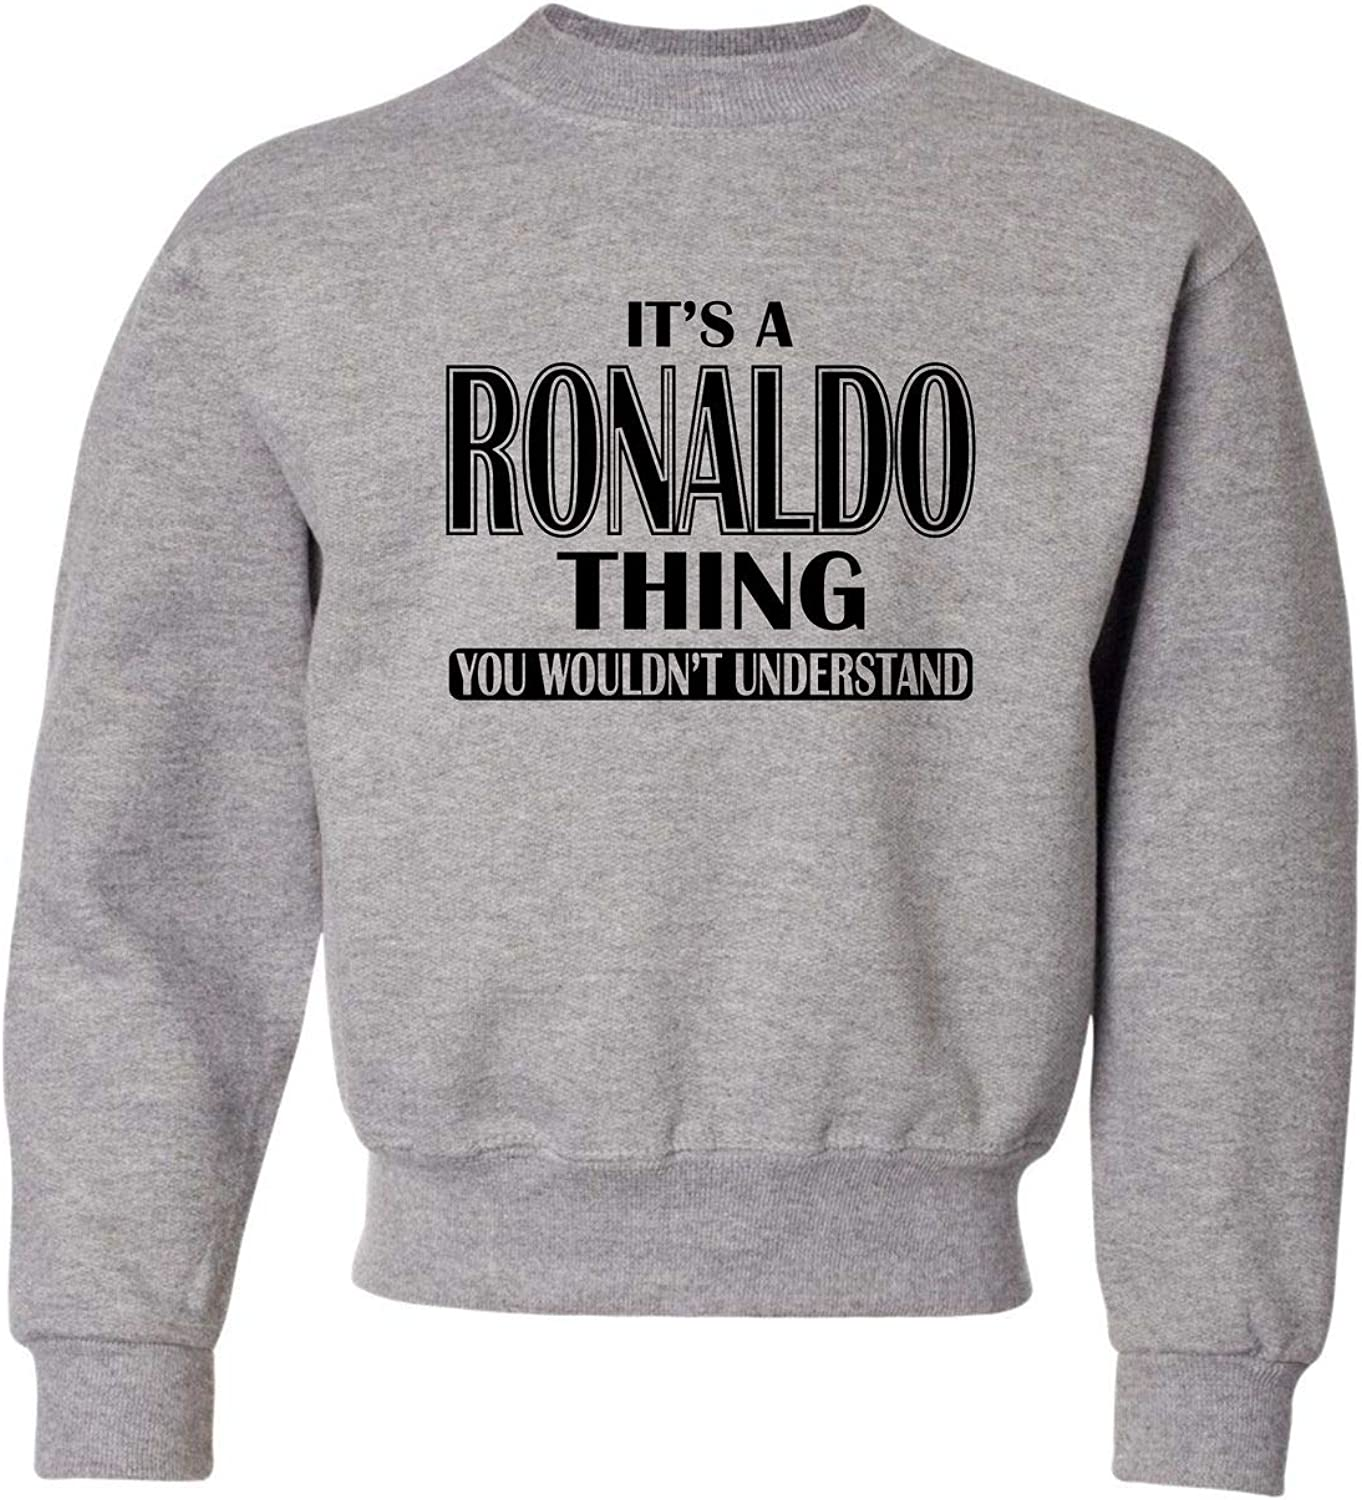 Go All Philadelphia Mall Out Youth It's A You Finally popular brand Thing Ronaldo Cr Wouldn't Understand